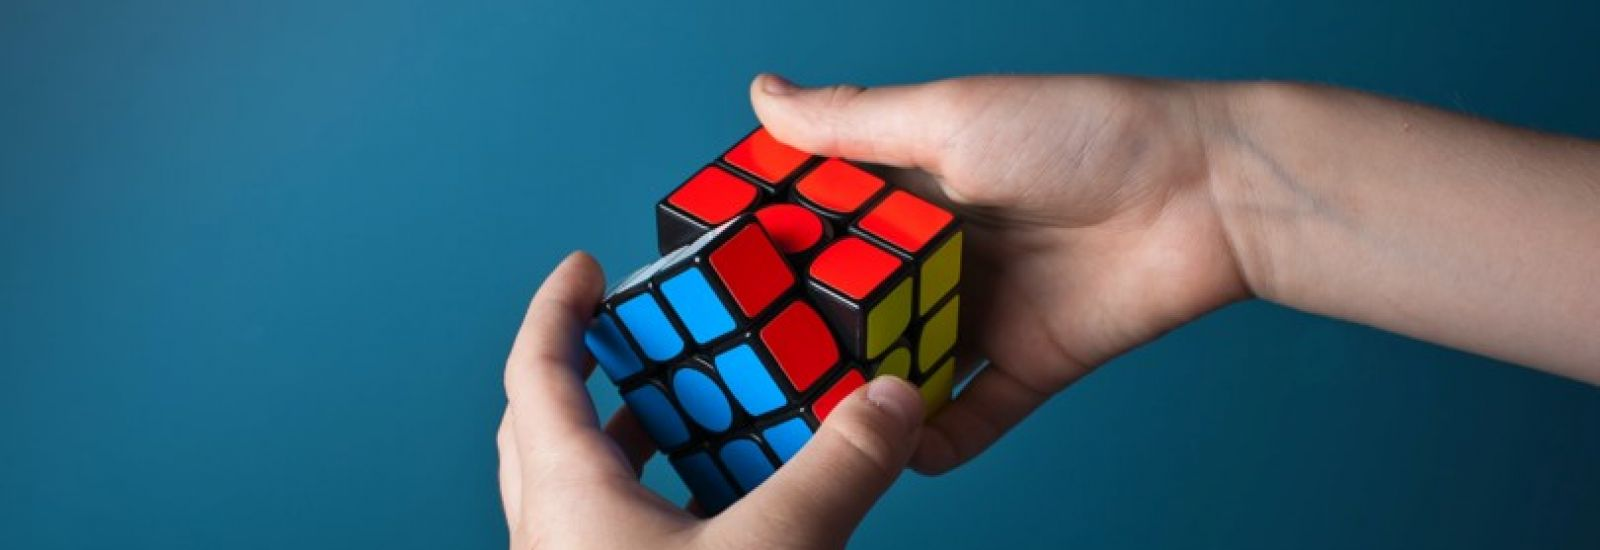 Hands twisting a Rubik's Cube, with completed blue and red sides visible